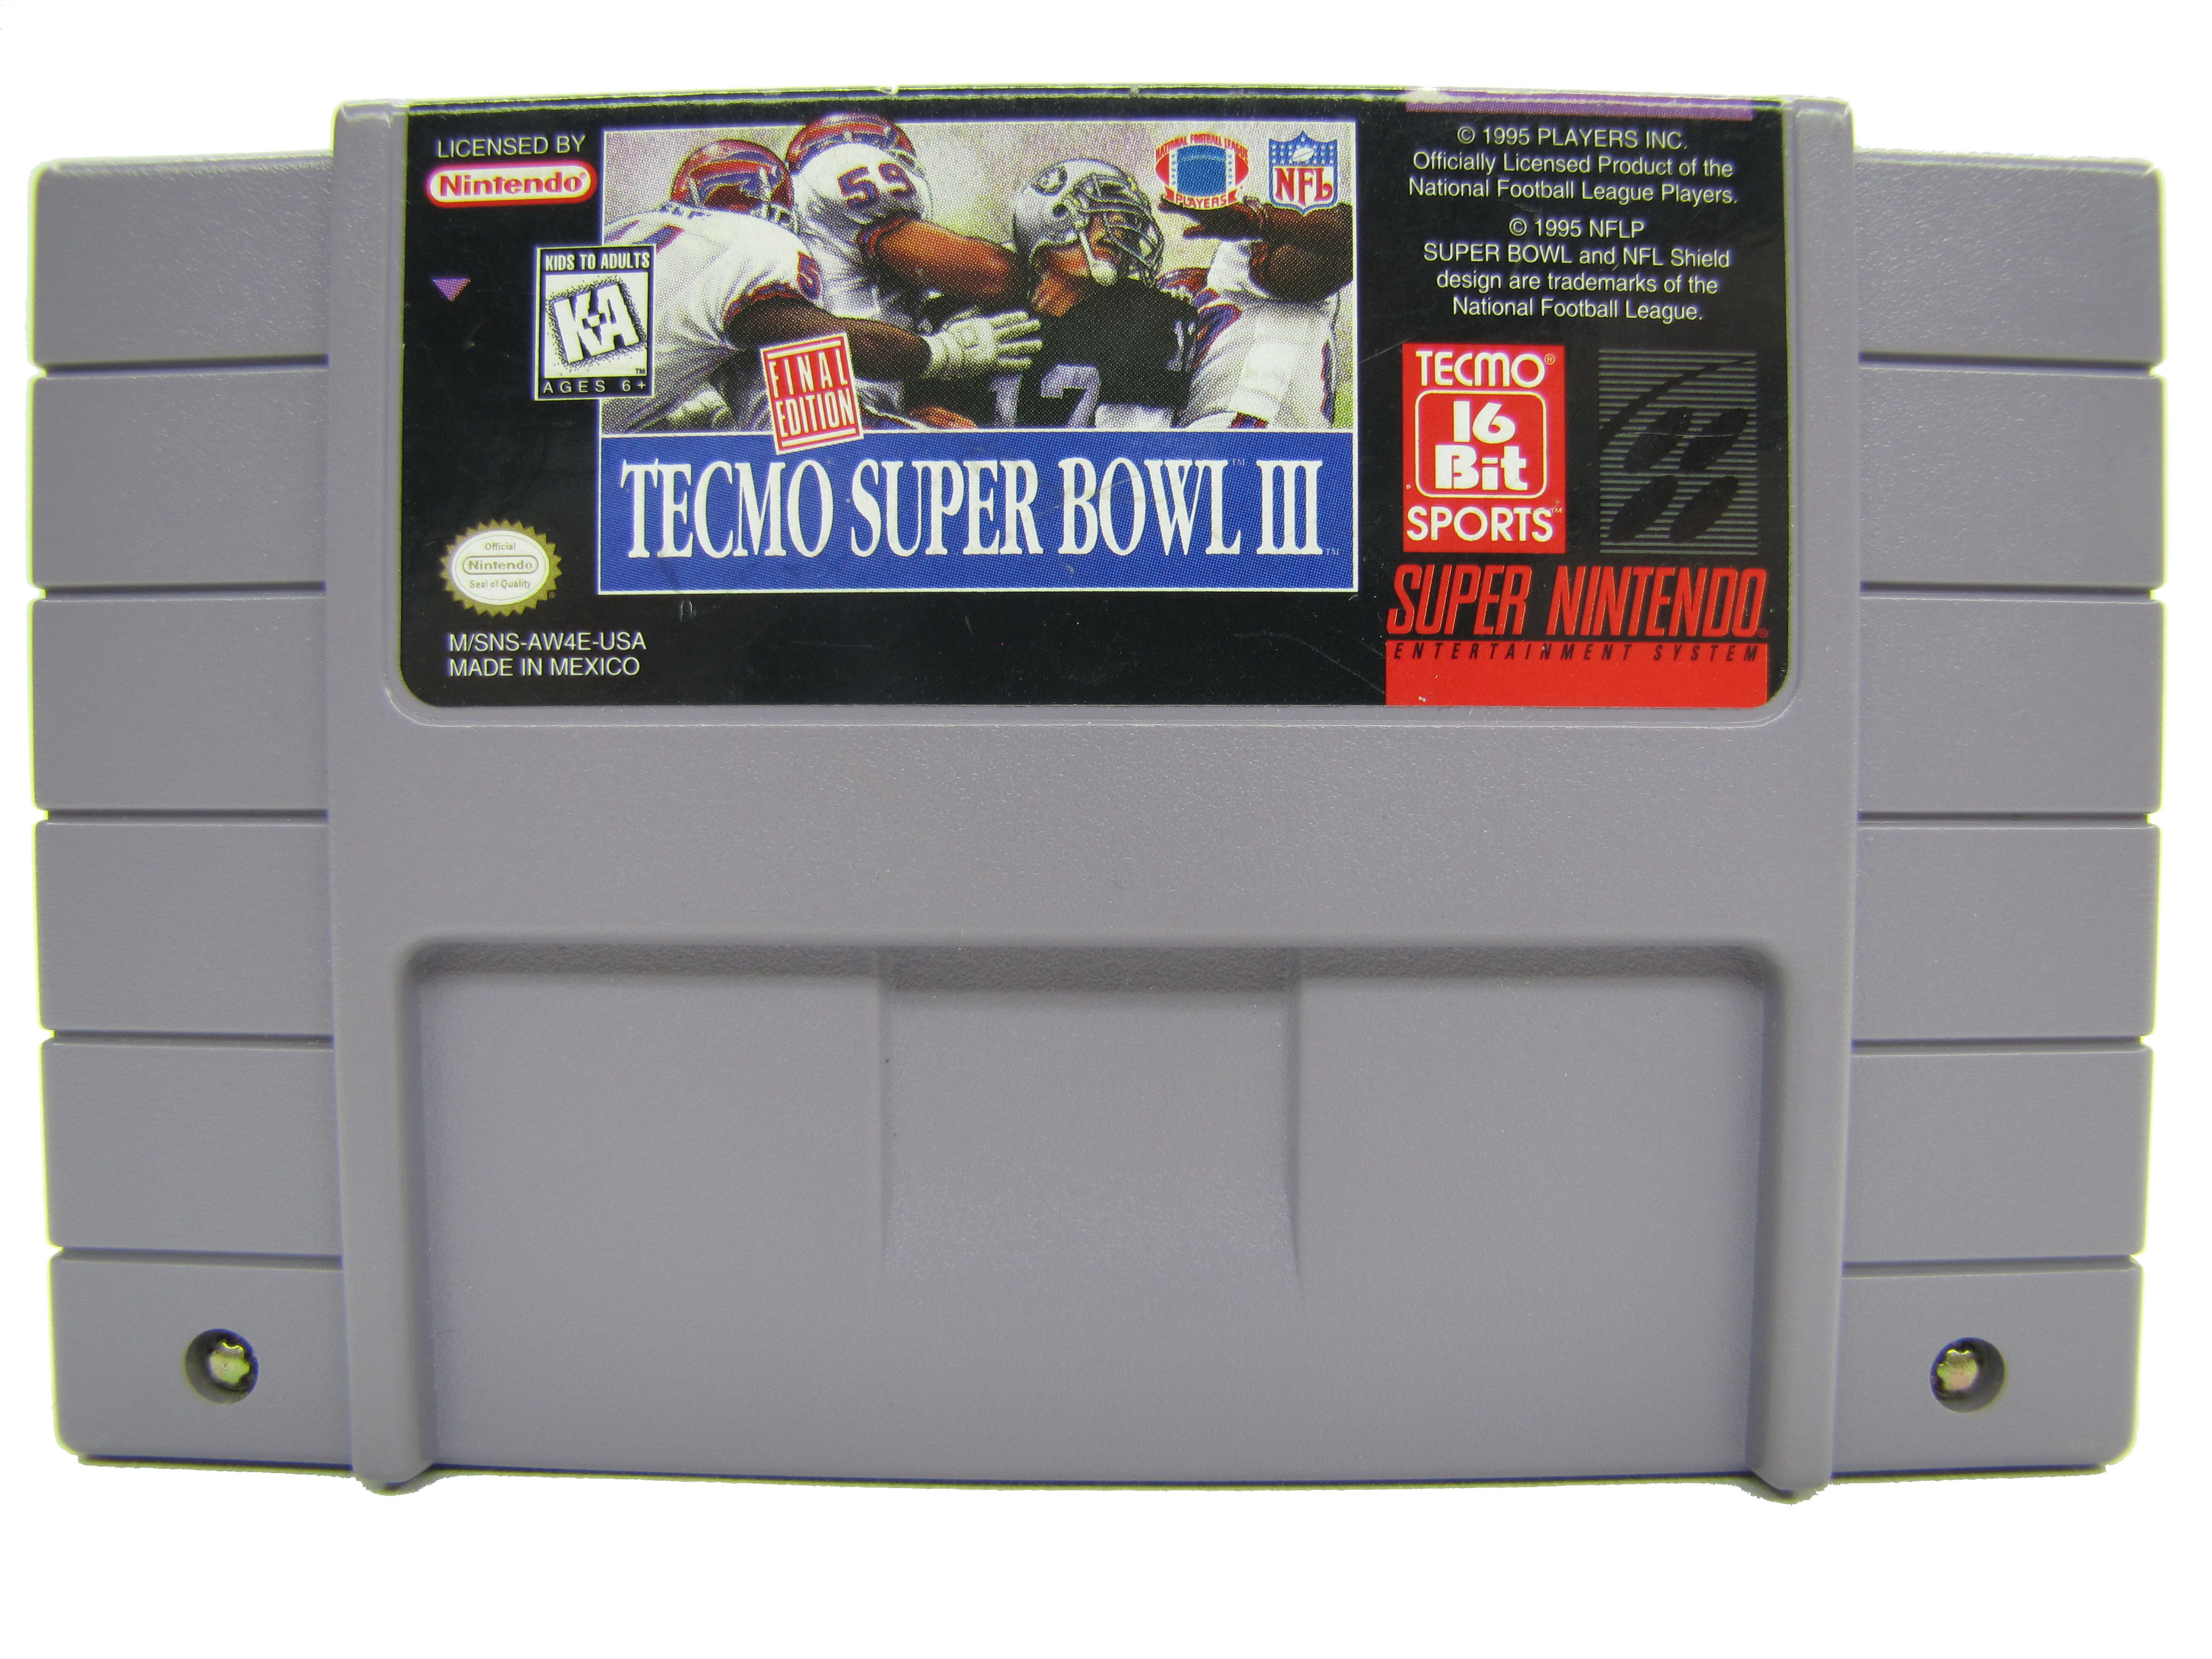 SNES Tecmo Super Bowl III: Final Edition - 1995